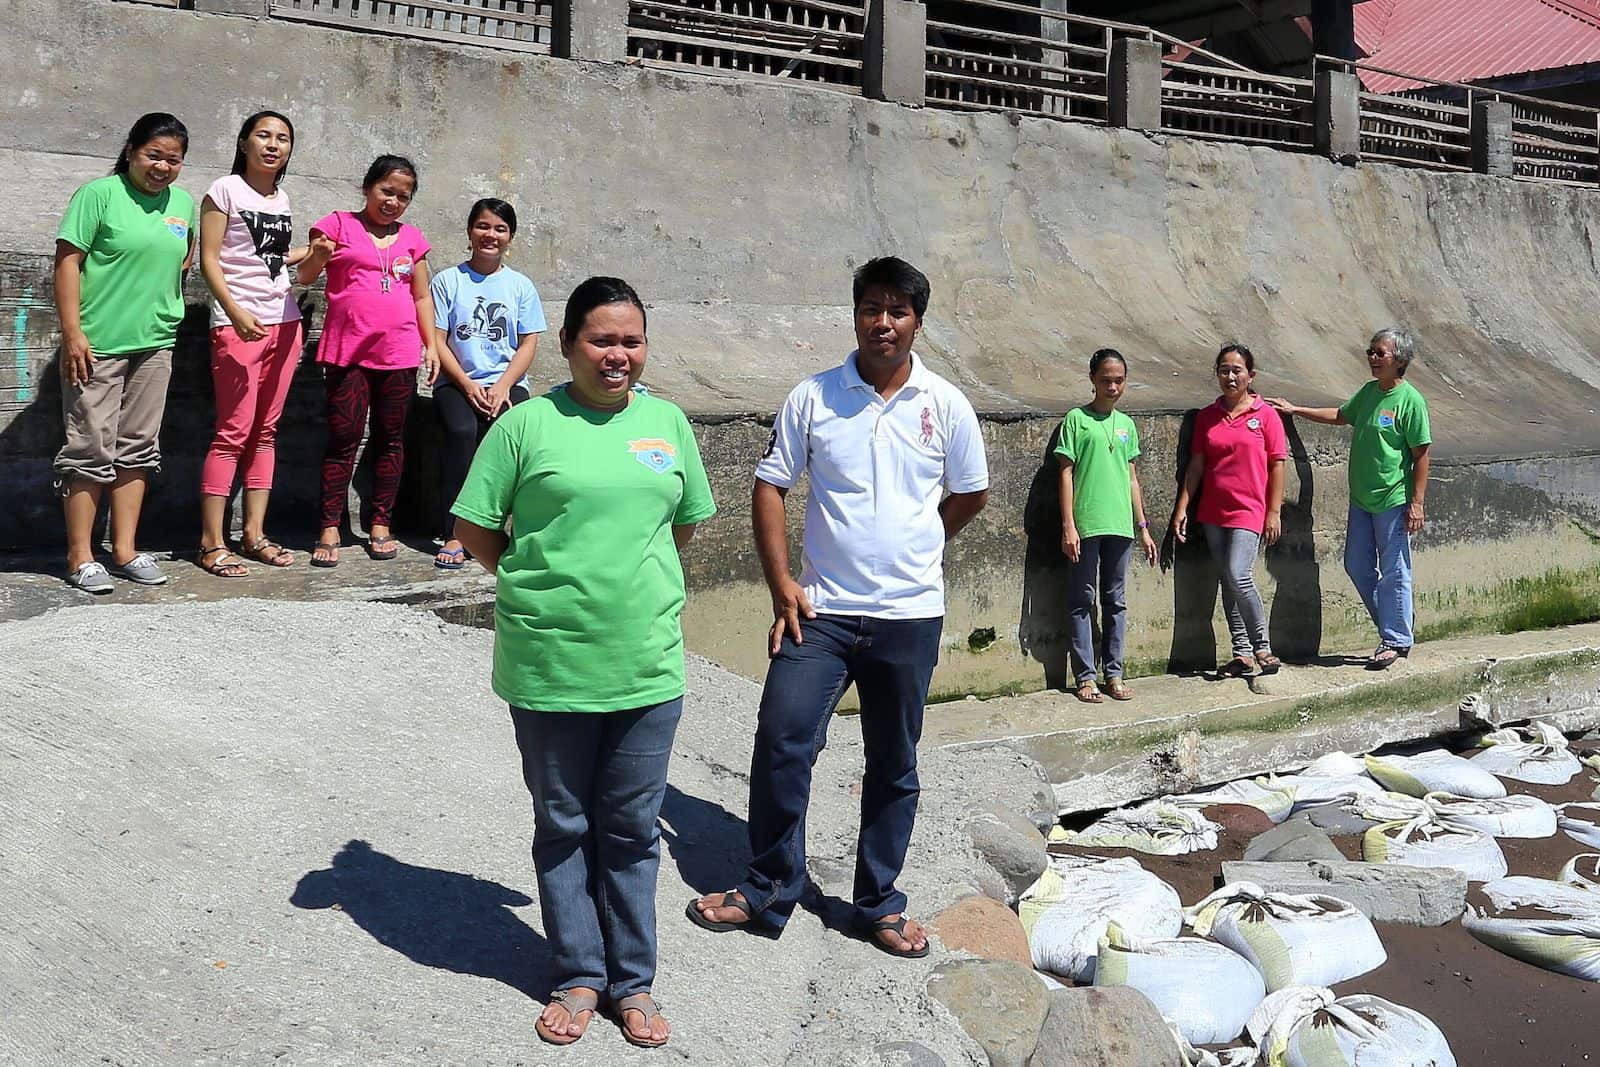 A group of people stand outside a concrete church building, wearing jeans and T-shirts.